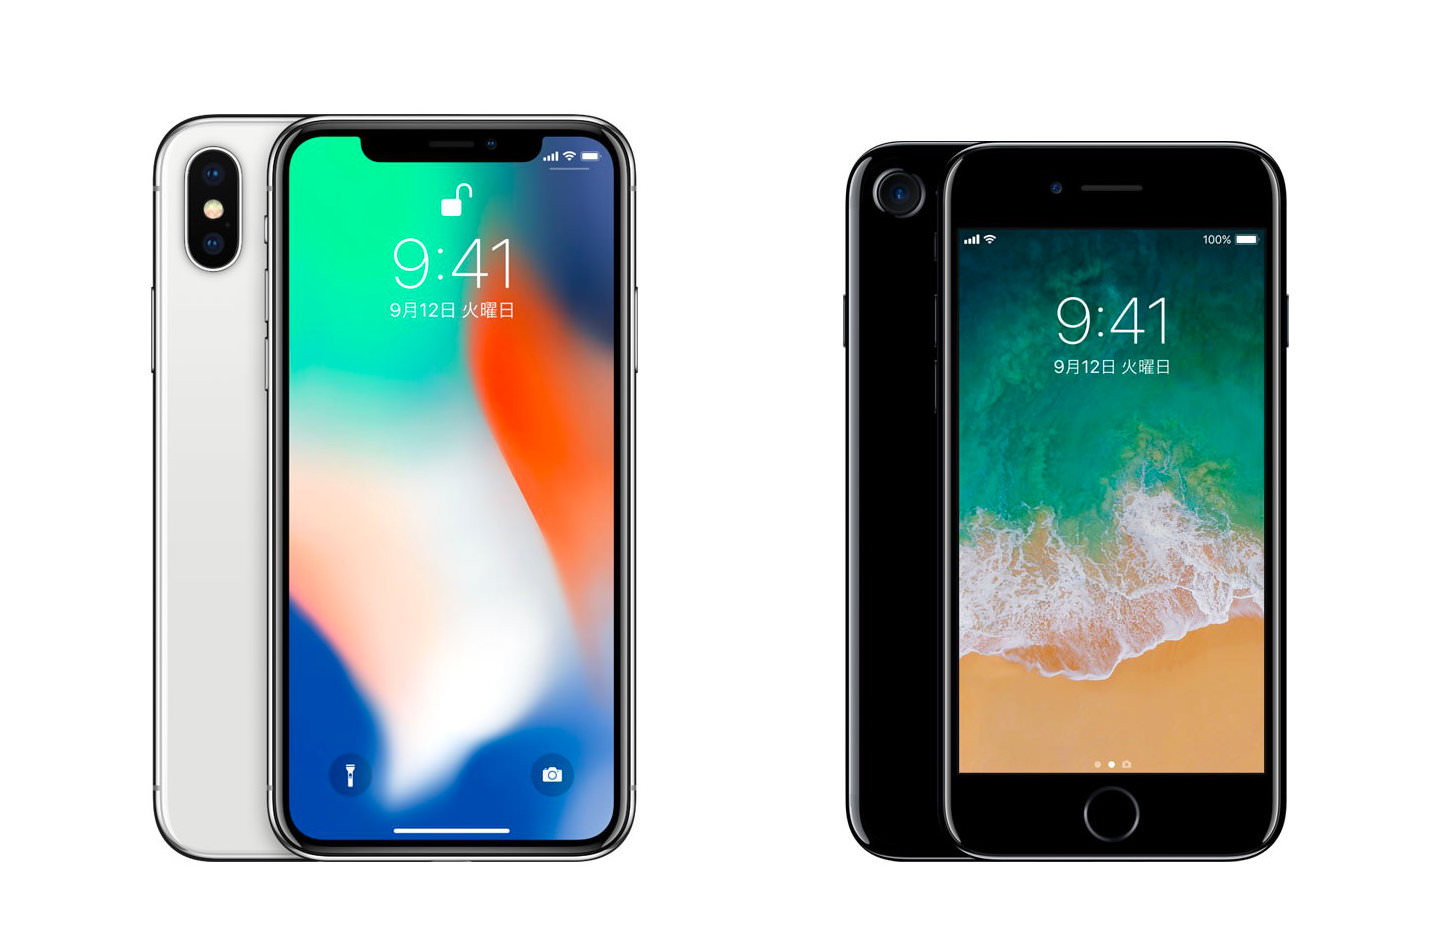 Iphone x vs iphone 7